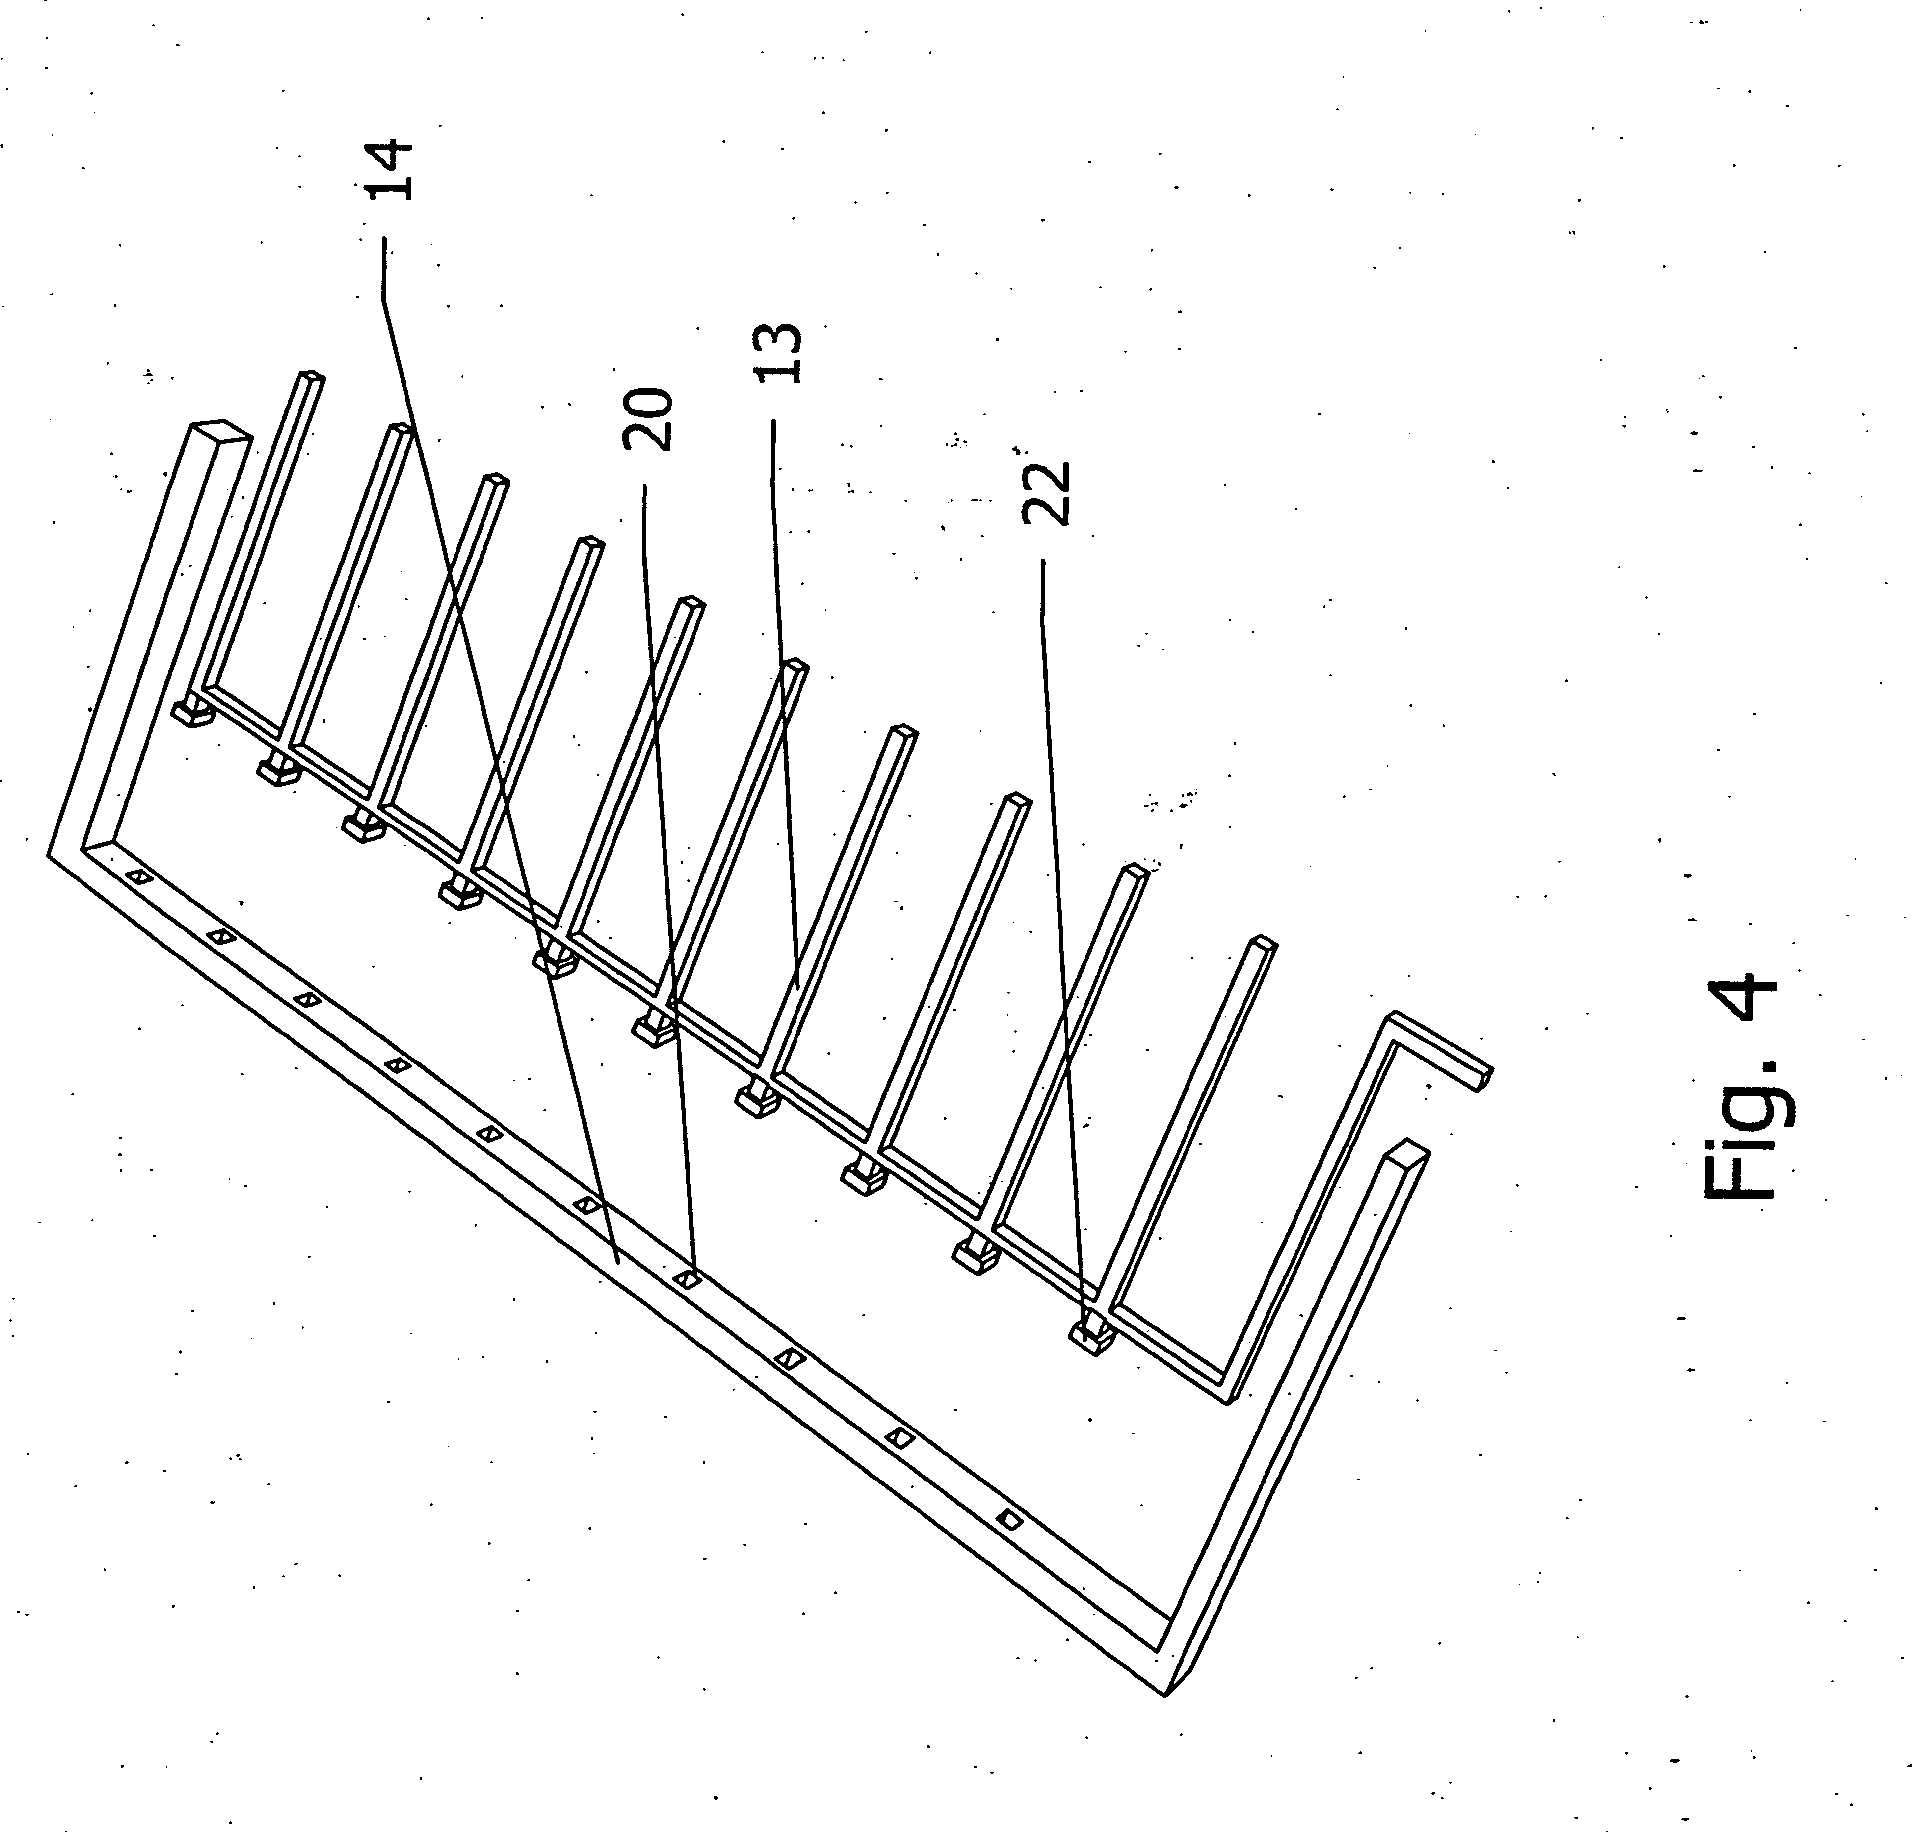 patent us20140165454 - flexible electric flyswatter with shape memory capabilities